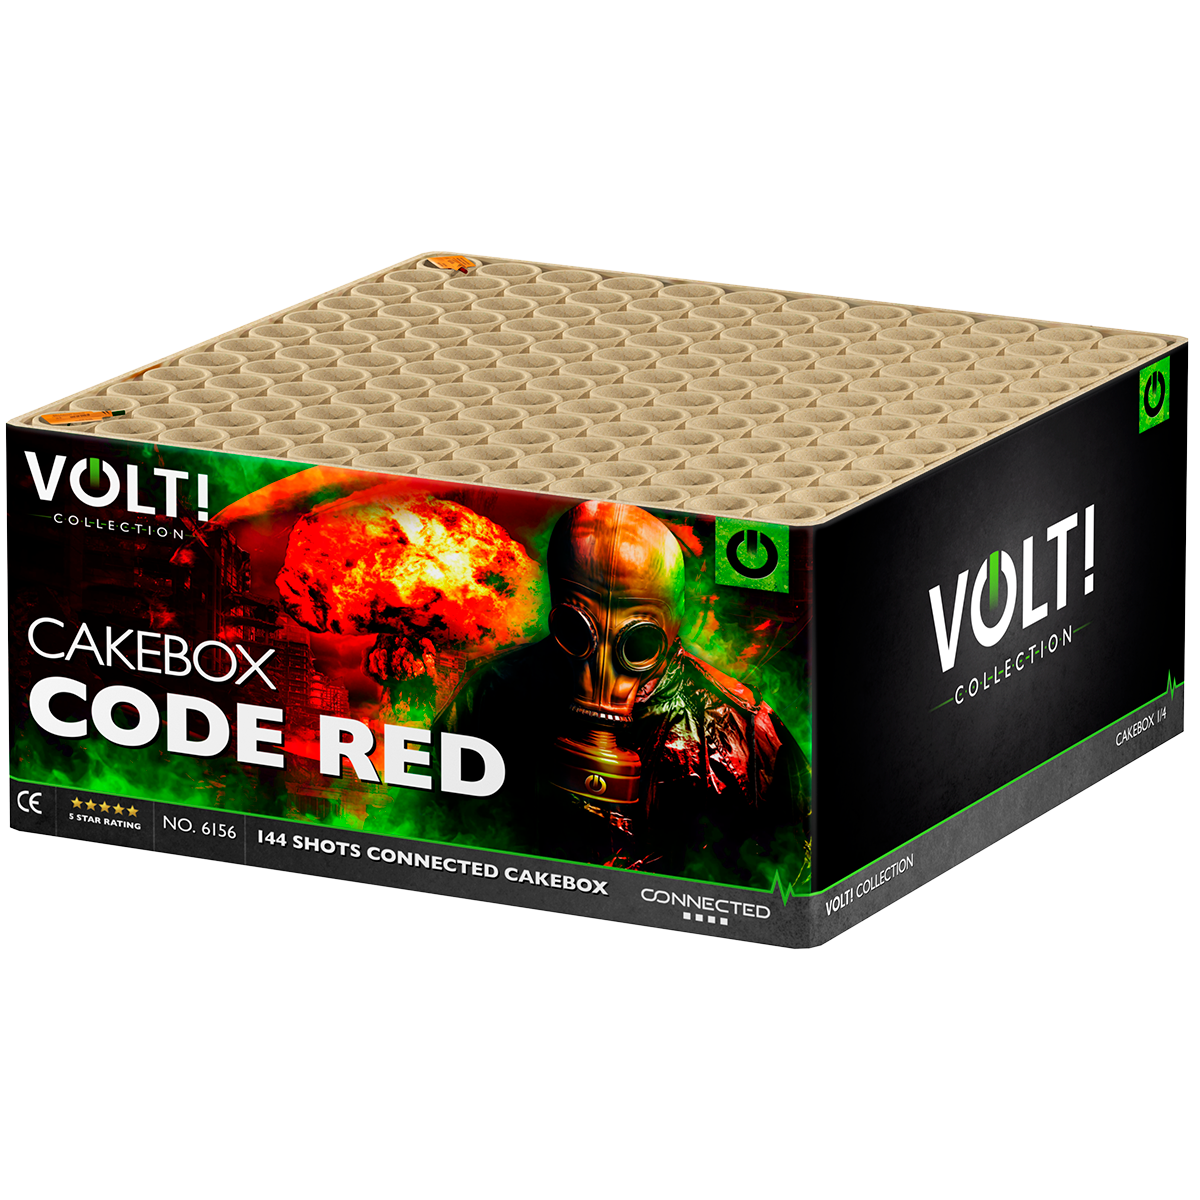 Volt Code Red Connected